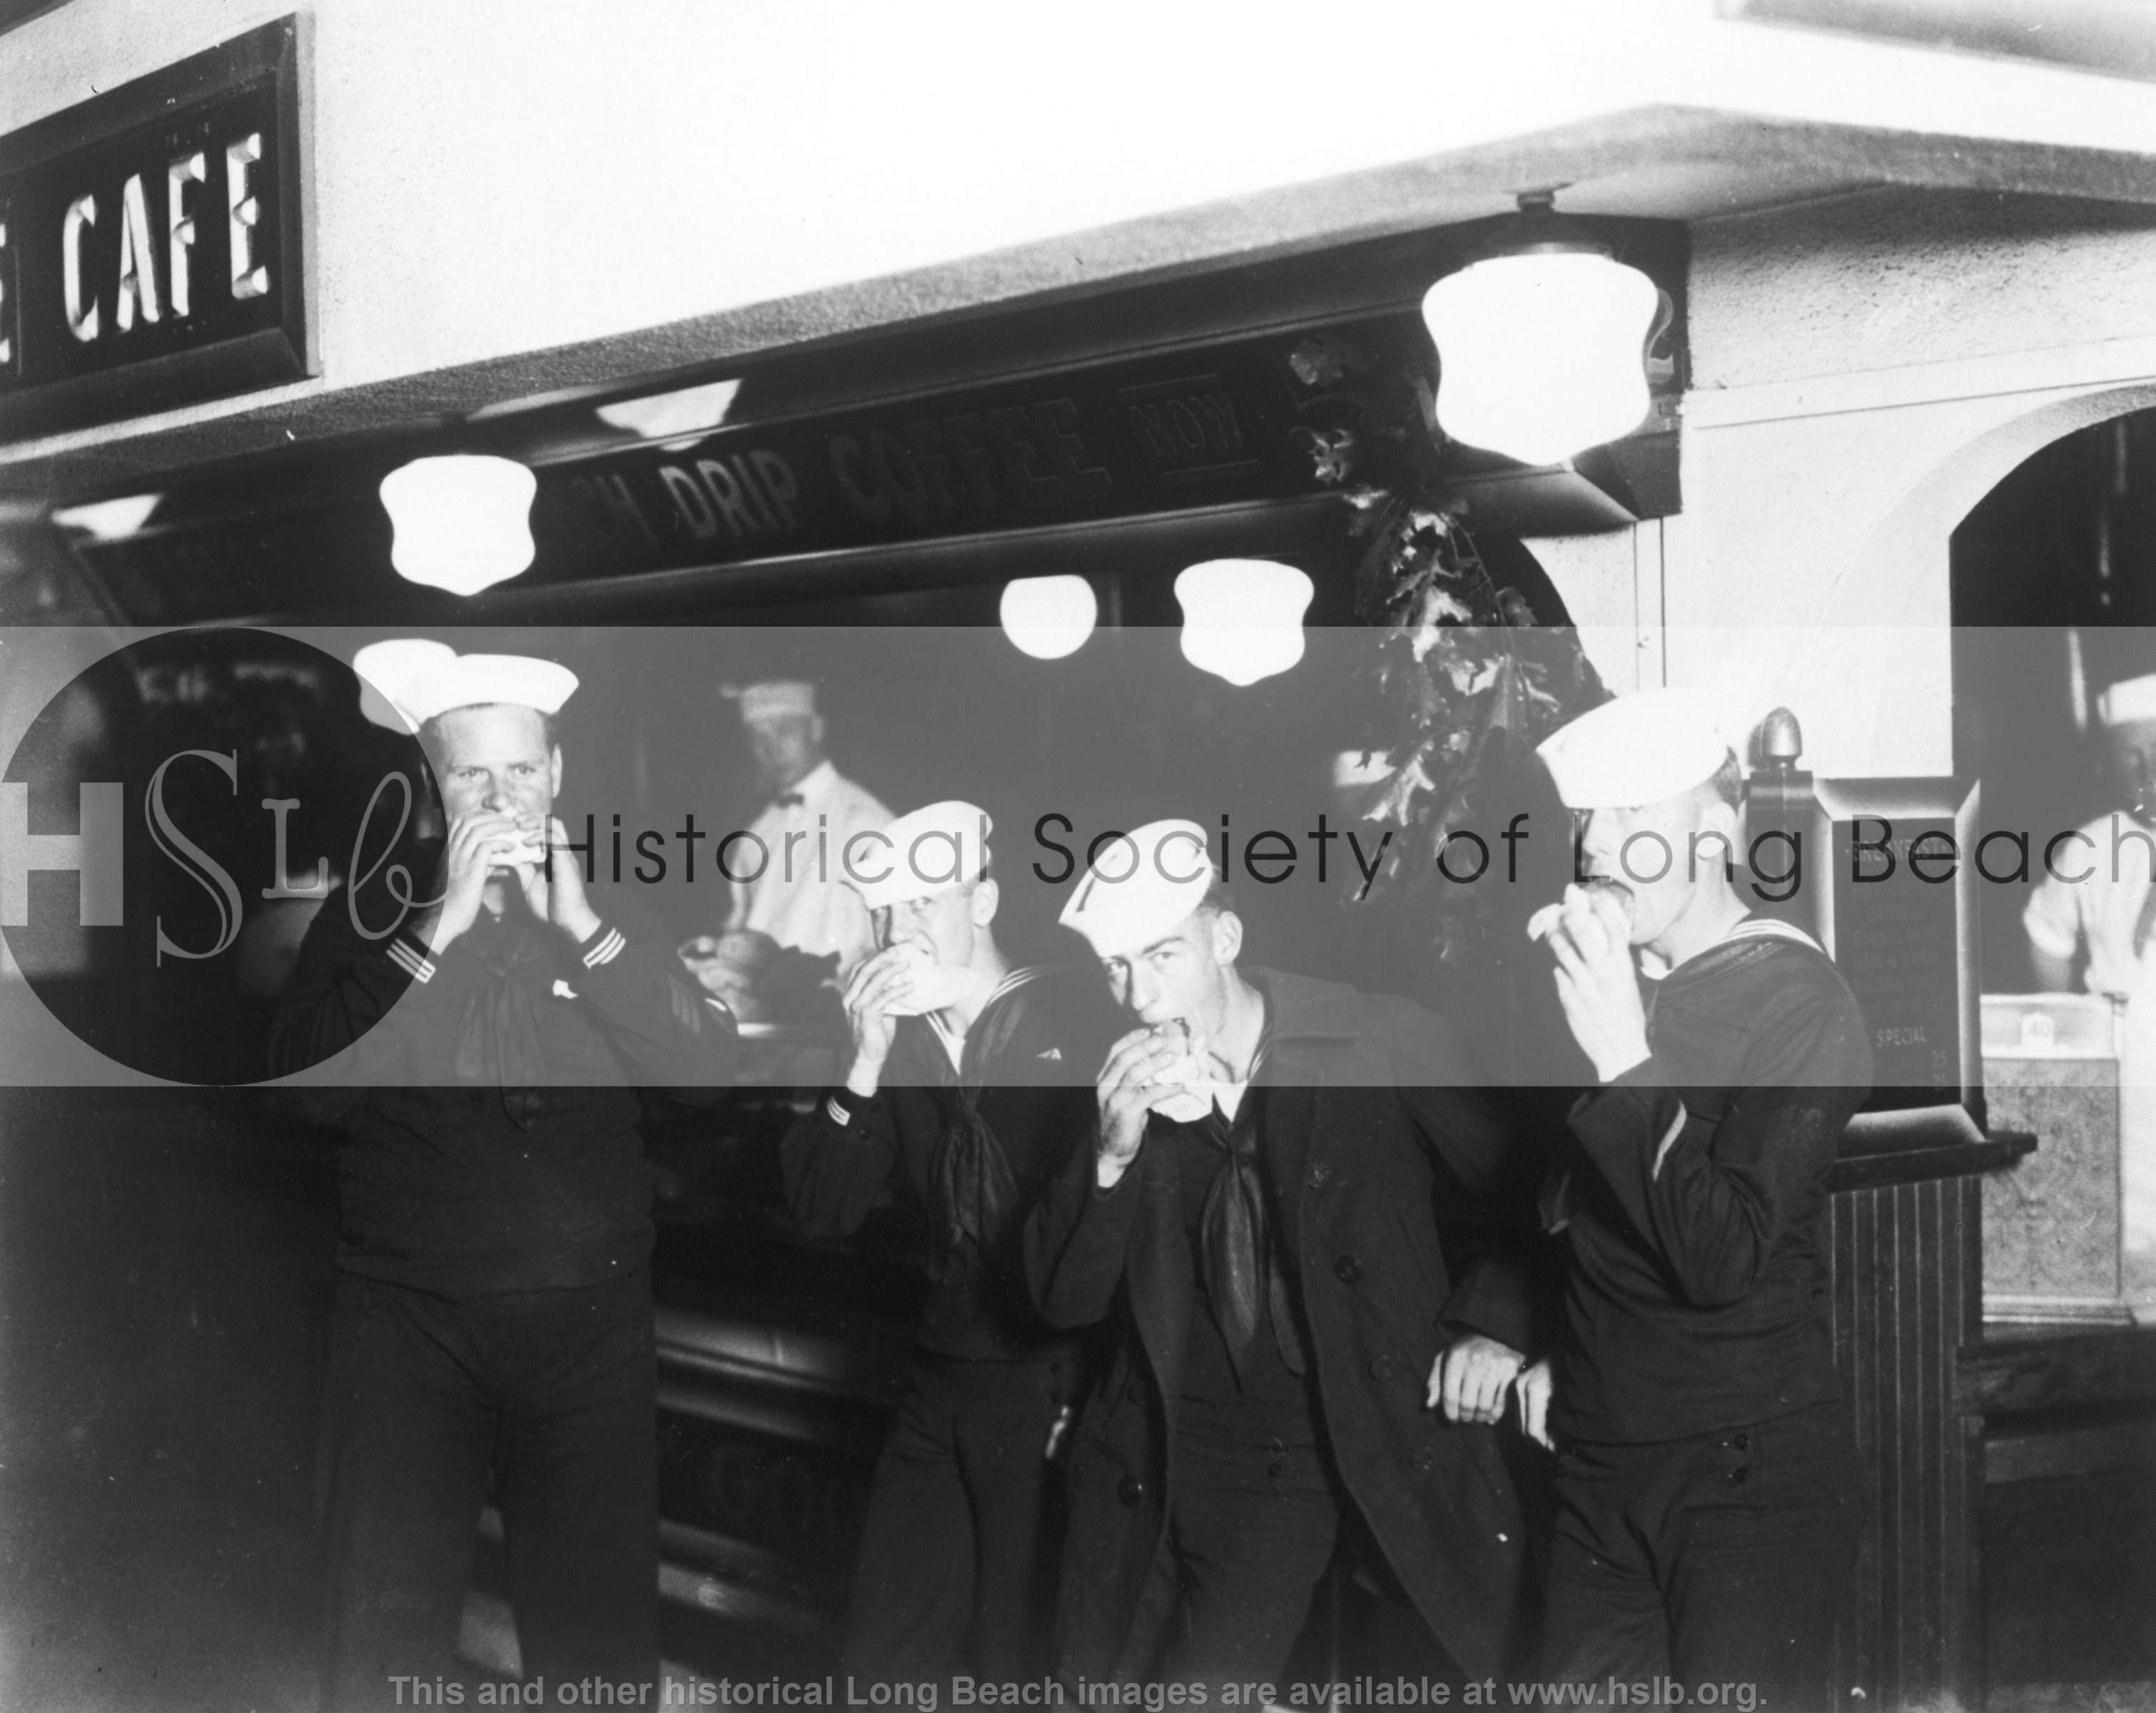 Sailors eating burgers, 1937 vintage photograph